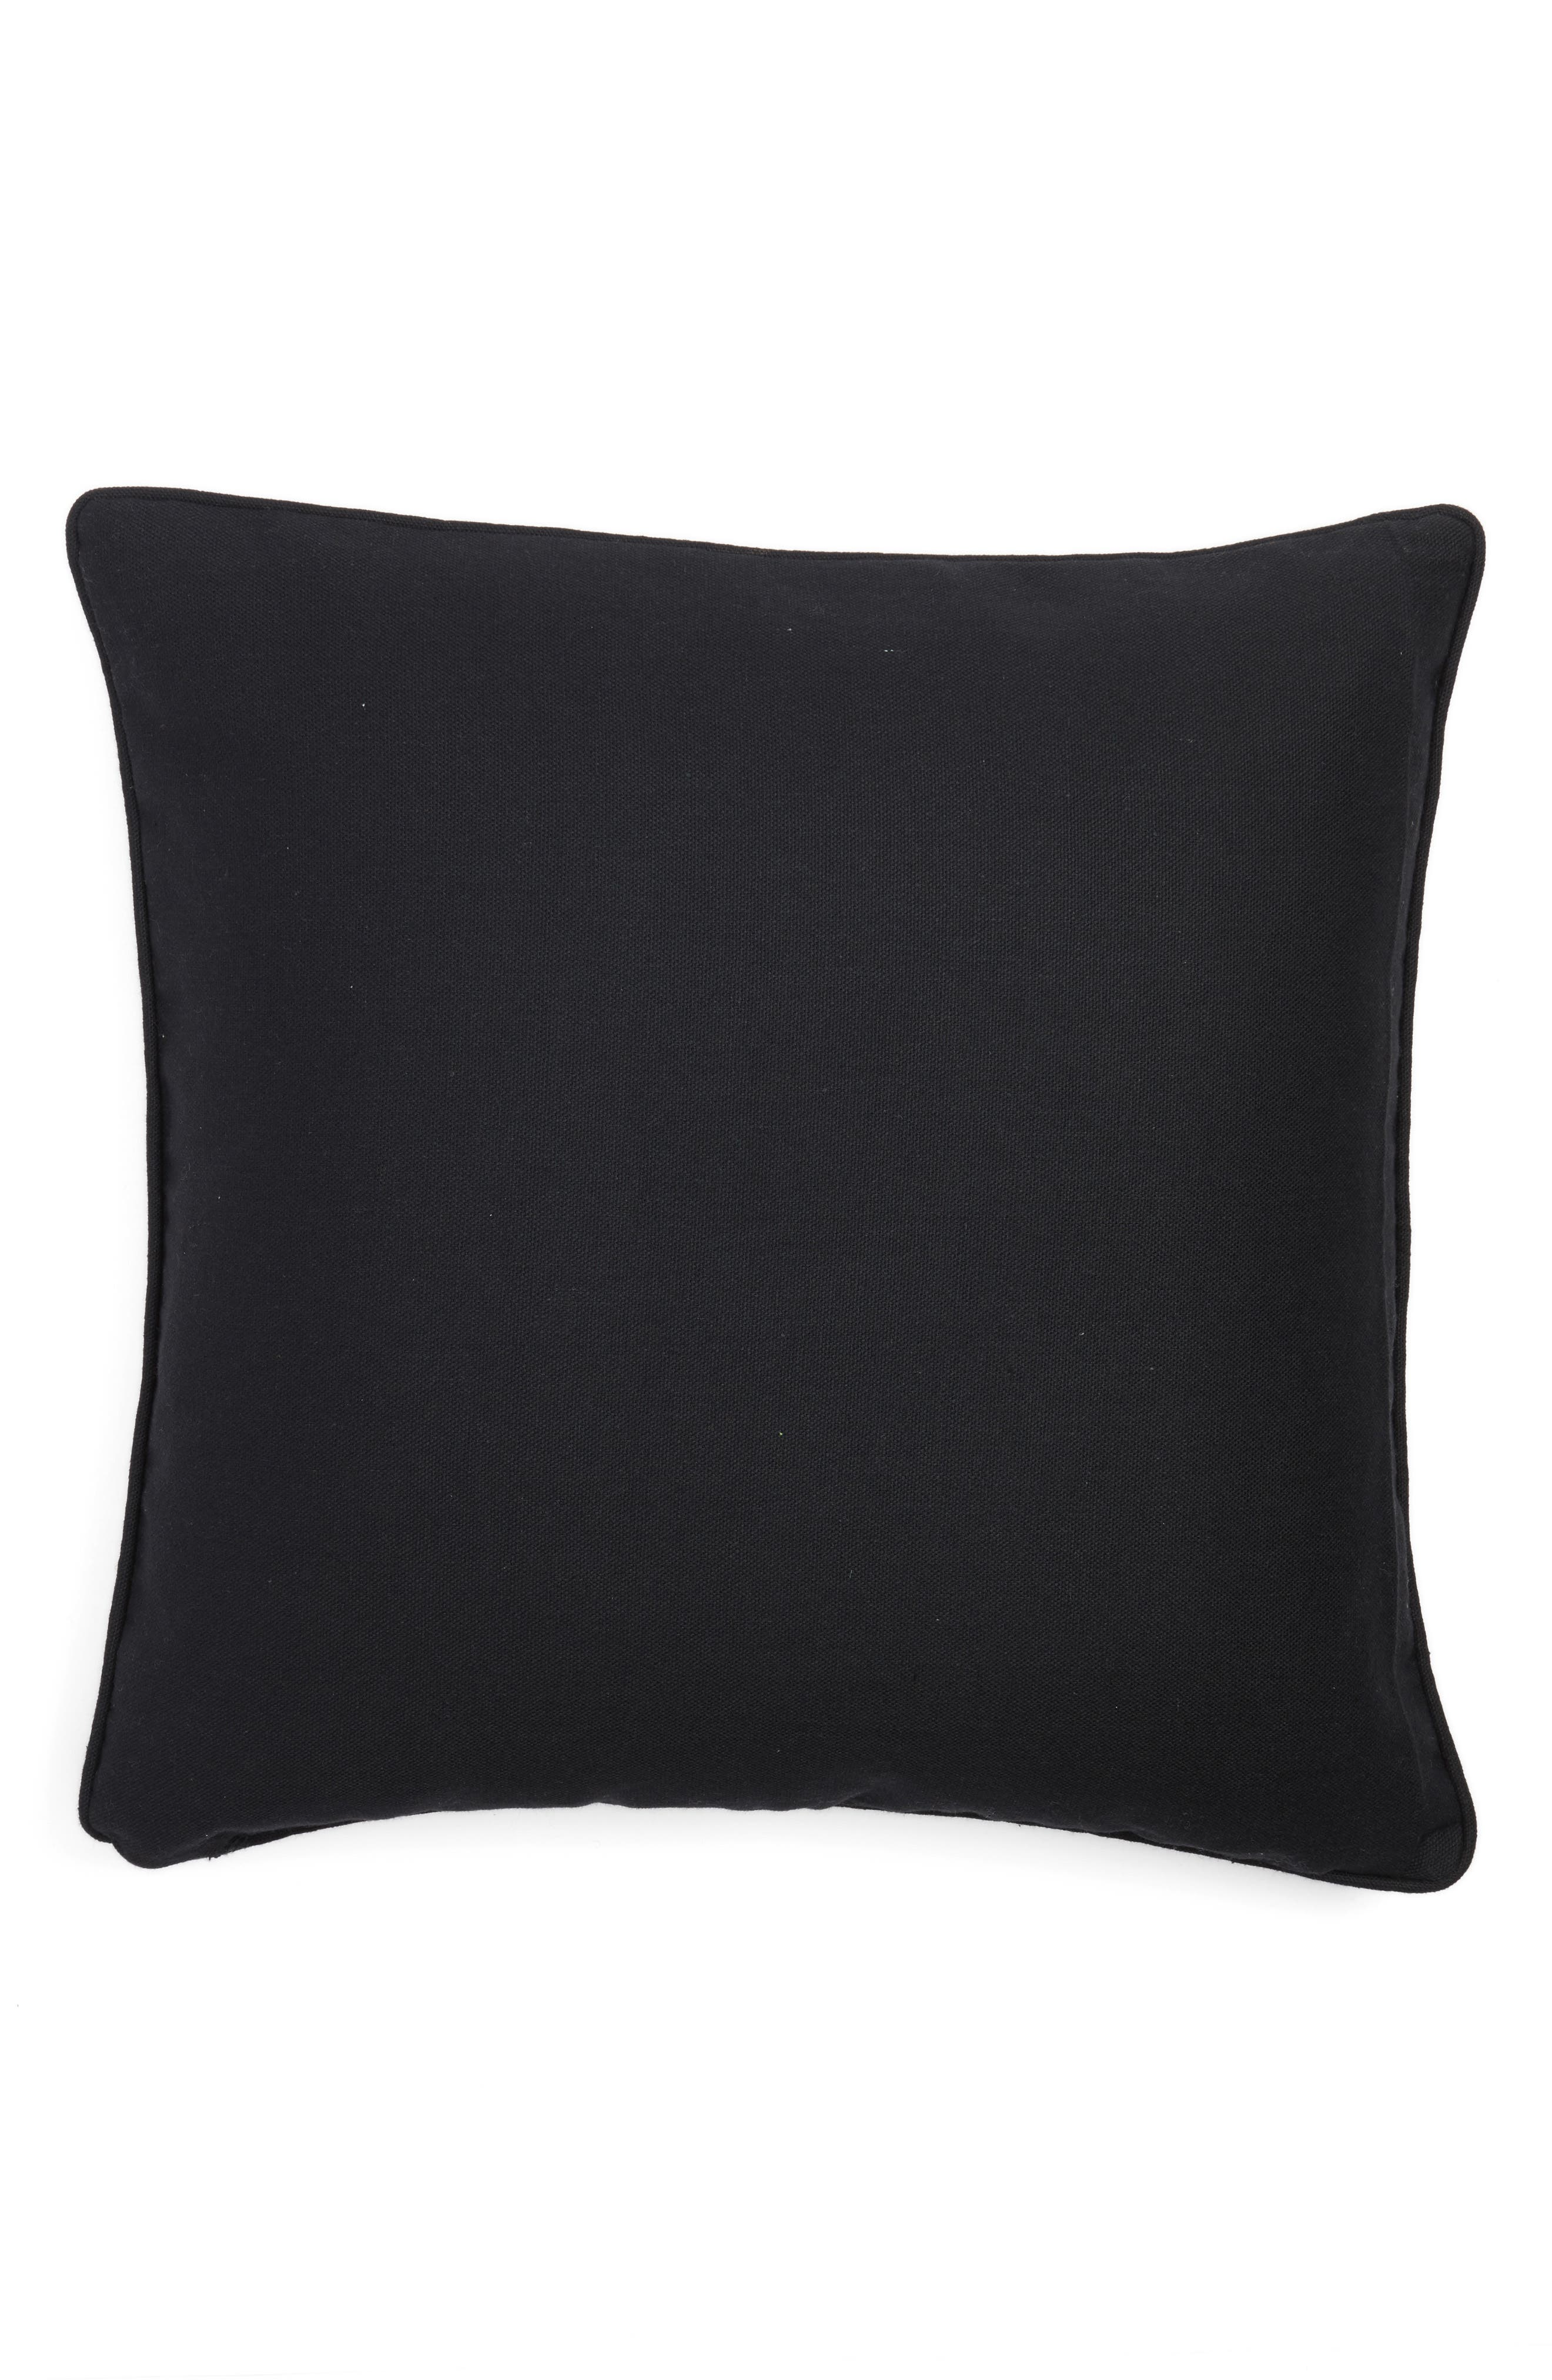 Witty Witch Pillow,                             Alternate thumbnail 2, color,                             250